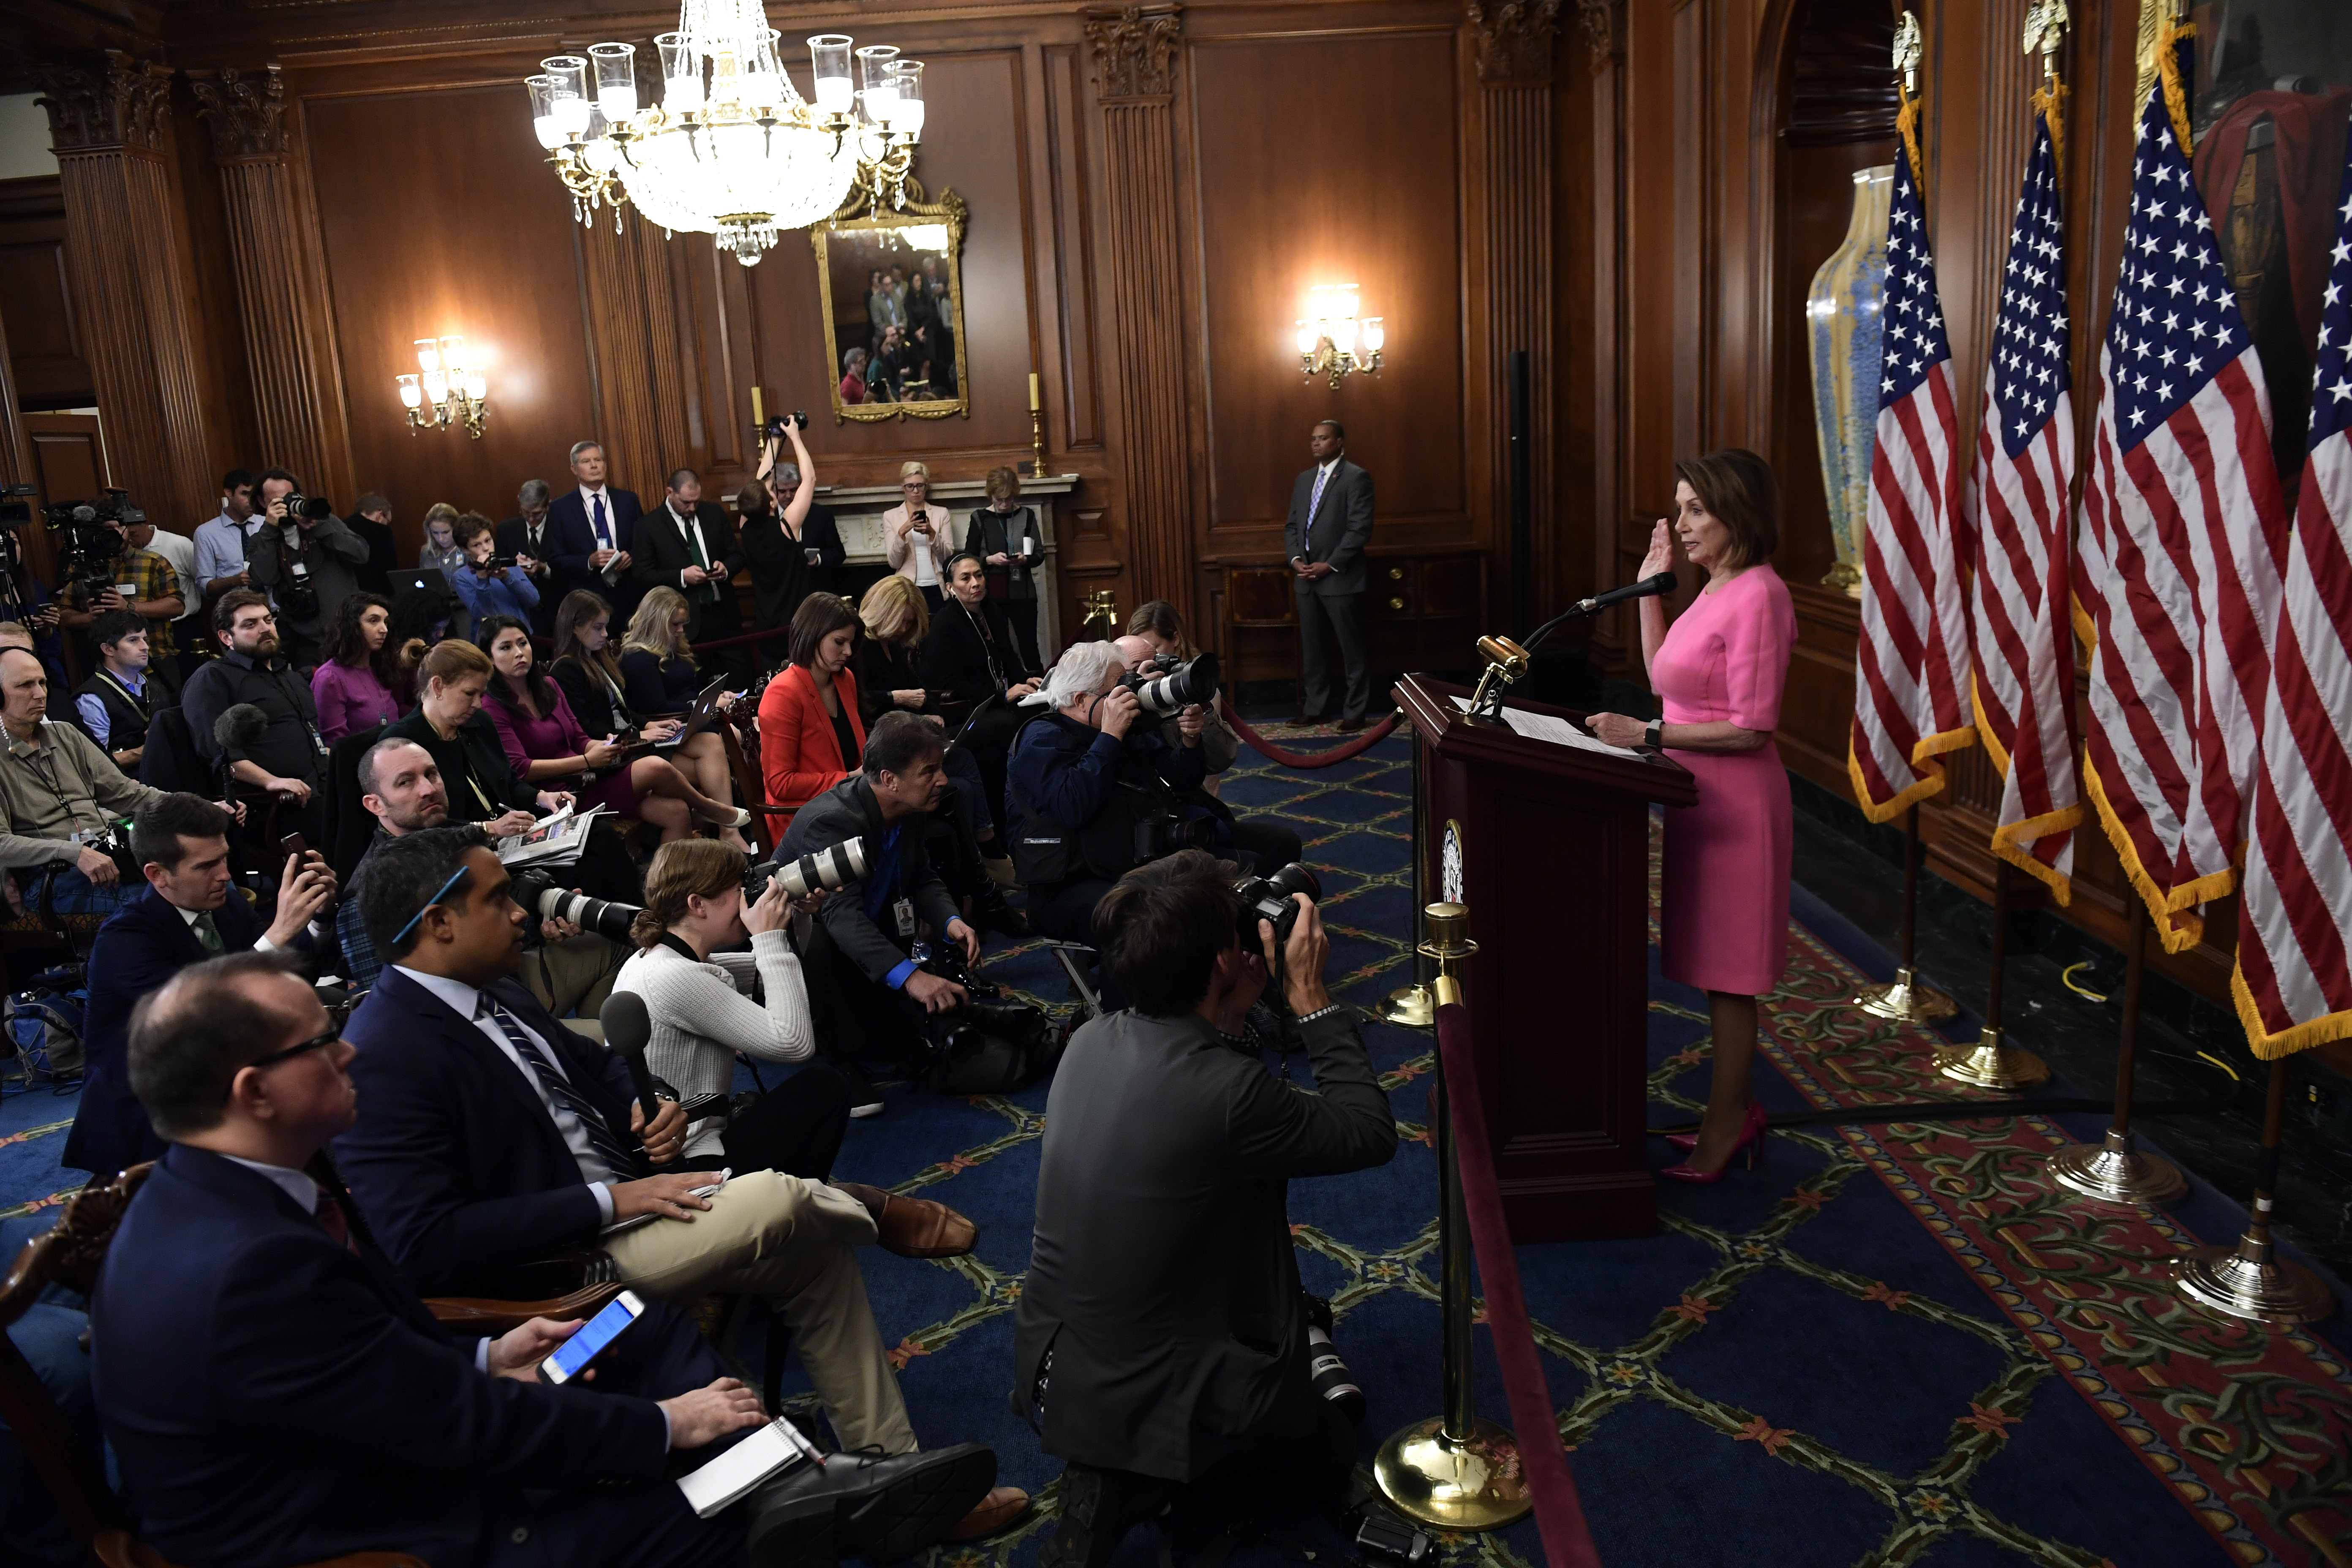 House Minority Leader Nancy Pelosi of Calif., speaks during a news conference on Capitol Hill on Nov. 7, 2018. (Susan Walsh/AP)